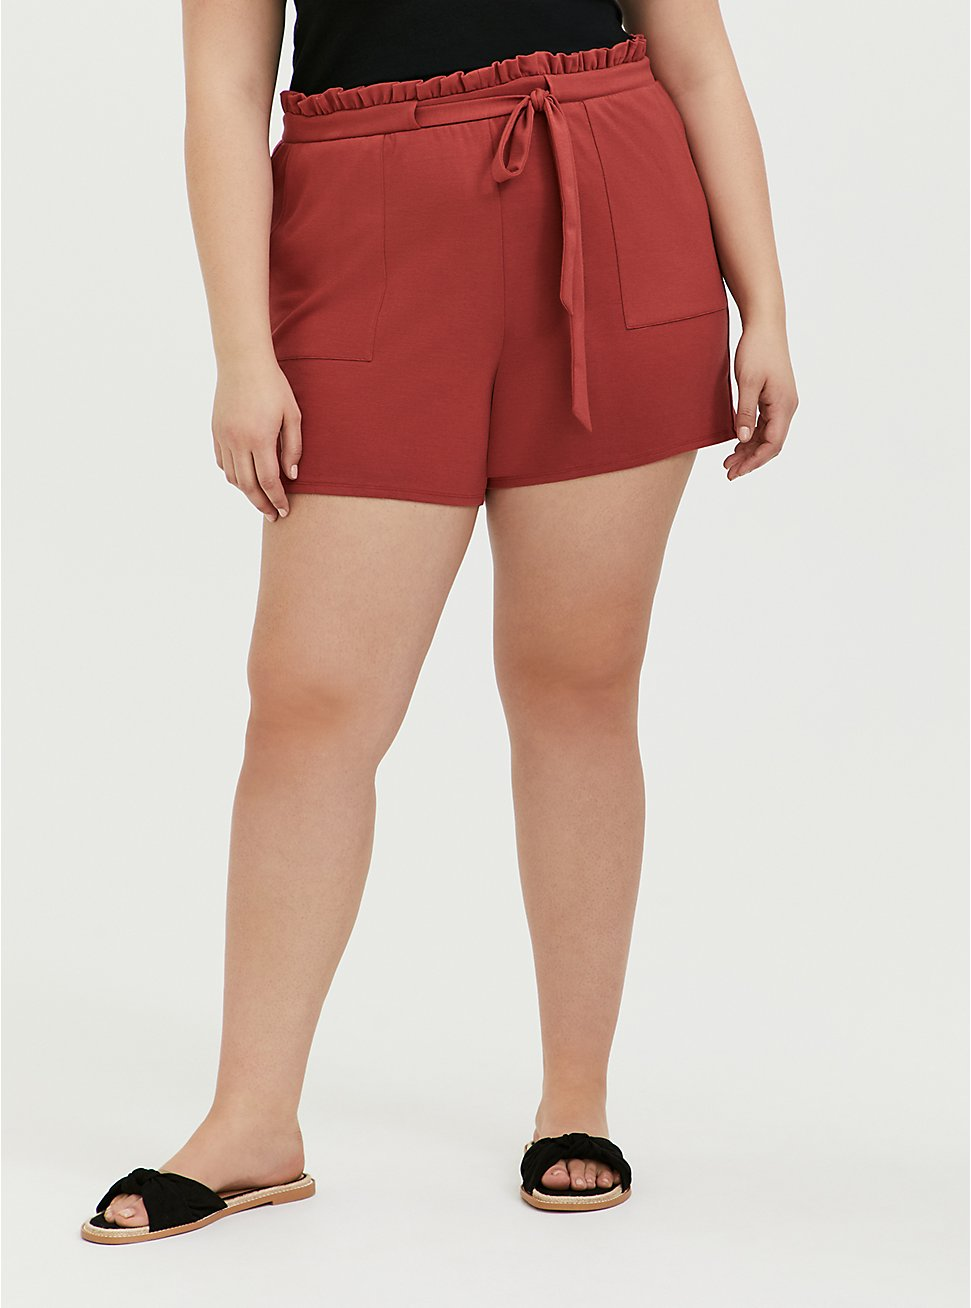 Drawstring Paperbag Waist Mid Short - Ponte Red Terracotta, RED, hi-res